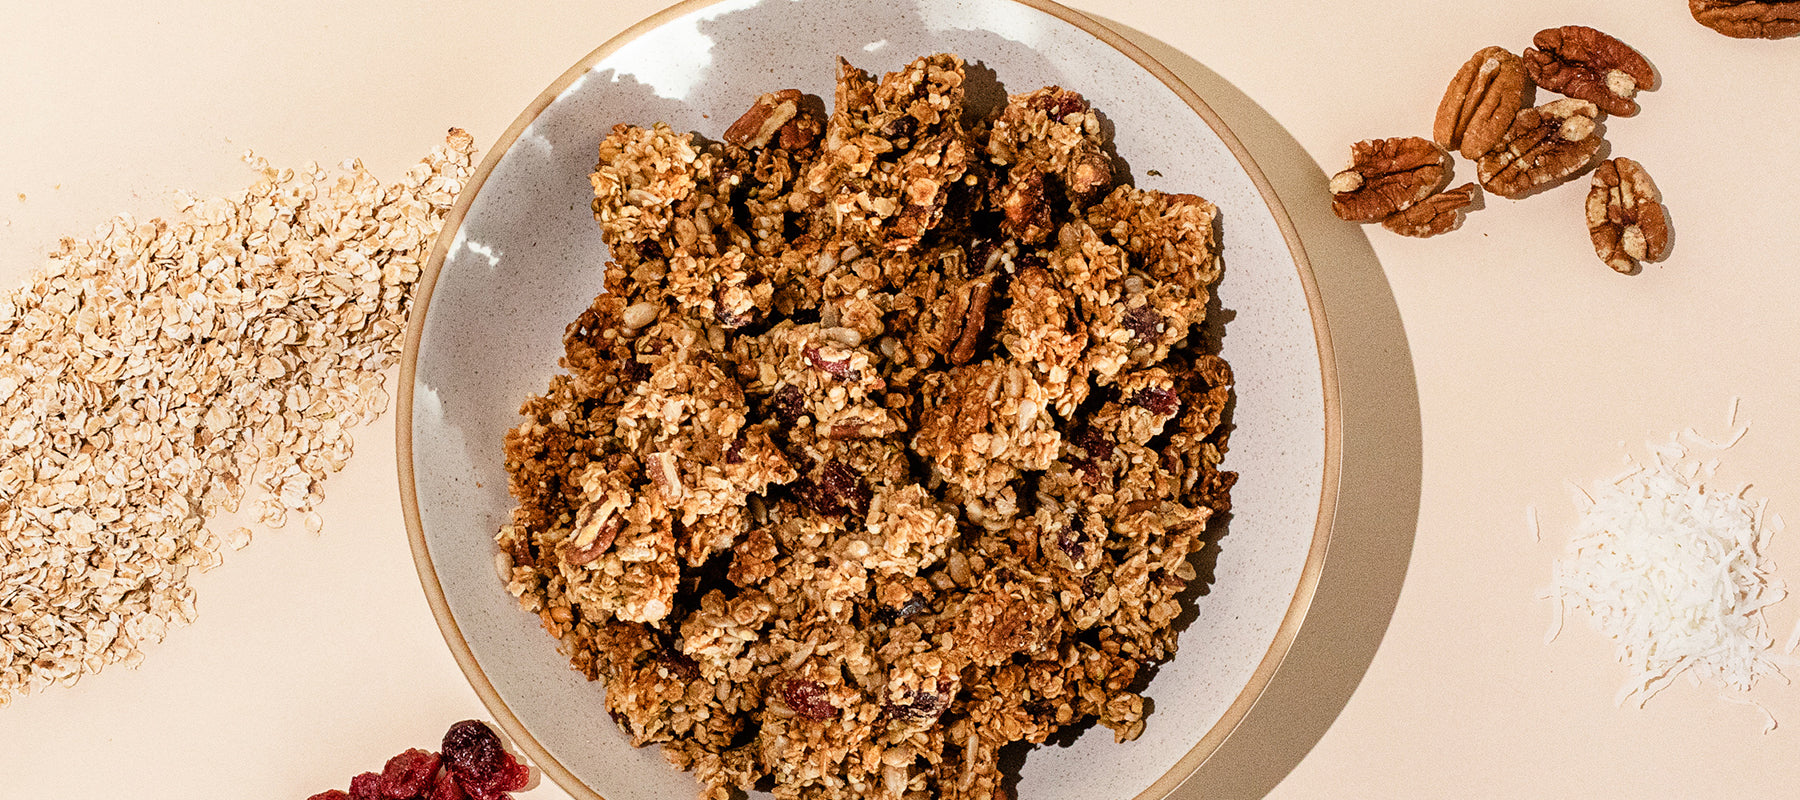 image of homemade granola.